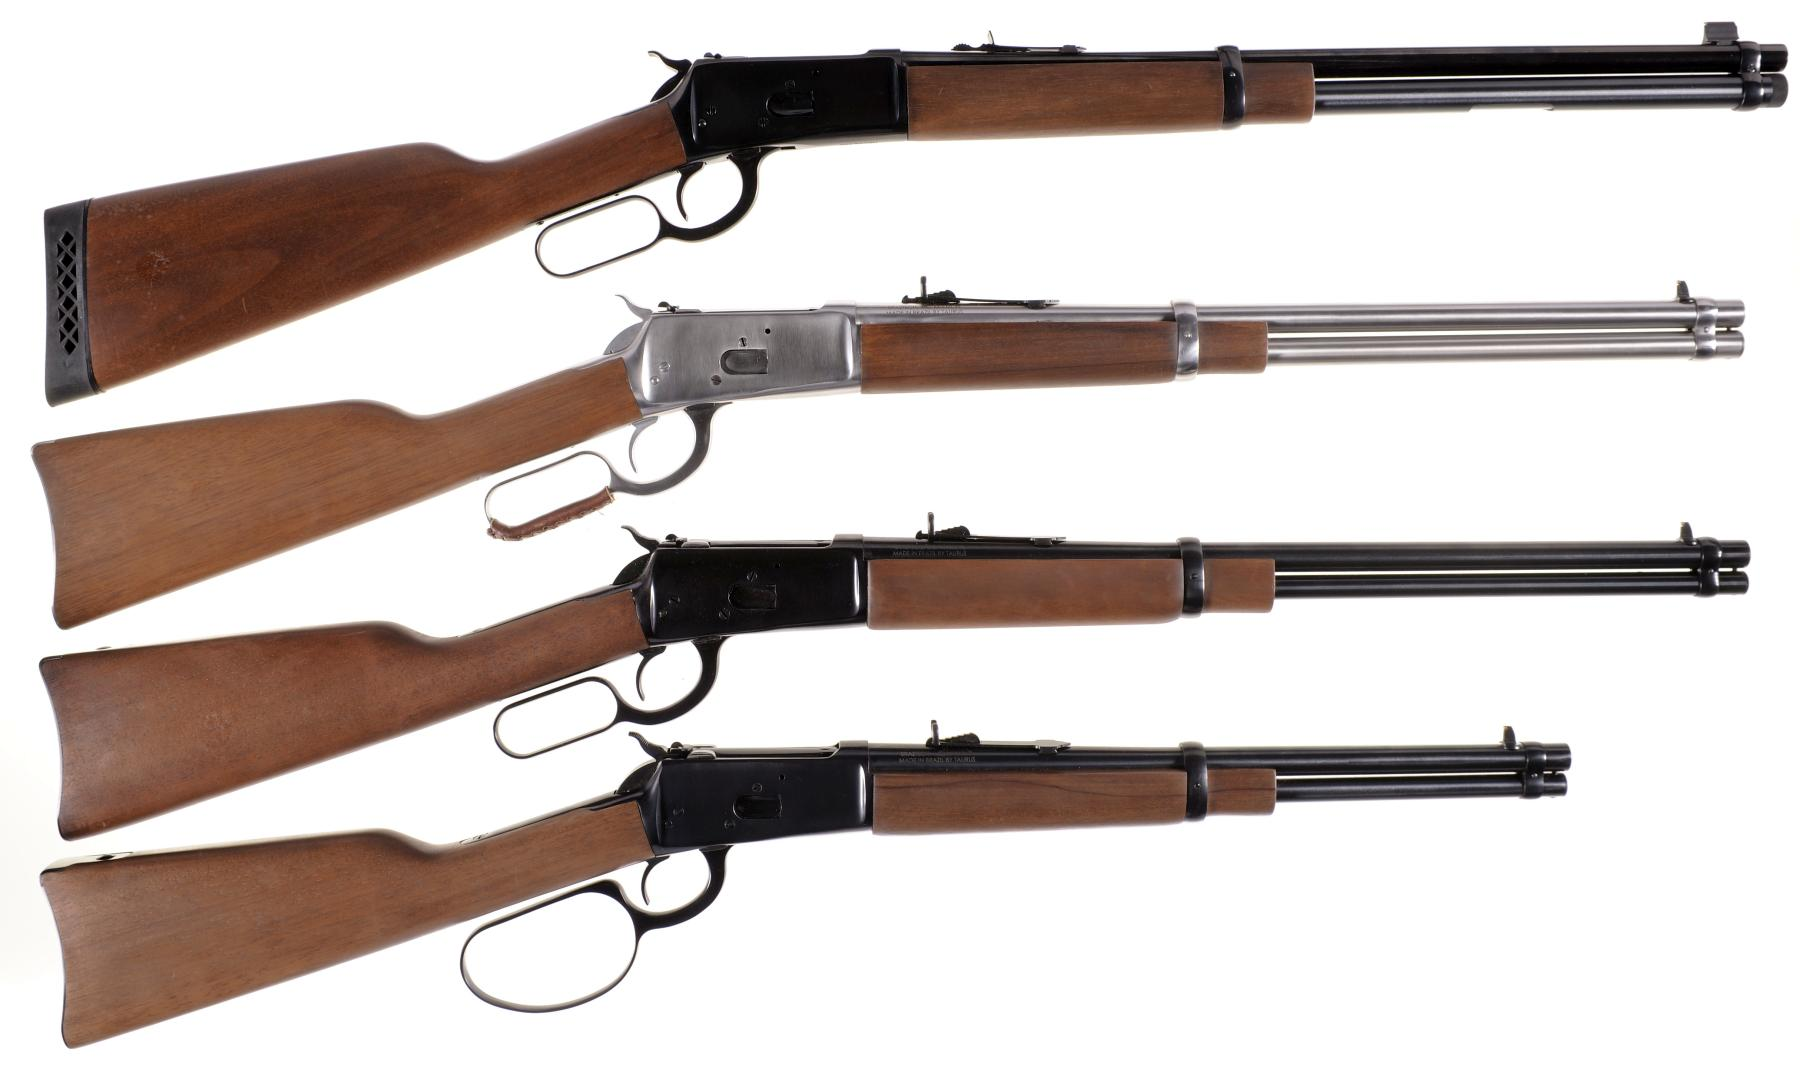 Four Rossi Lever Action Long Guns -A) Rossi Puma Model 92 Rifle